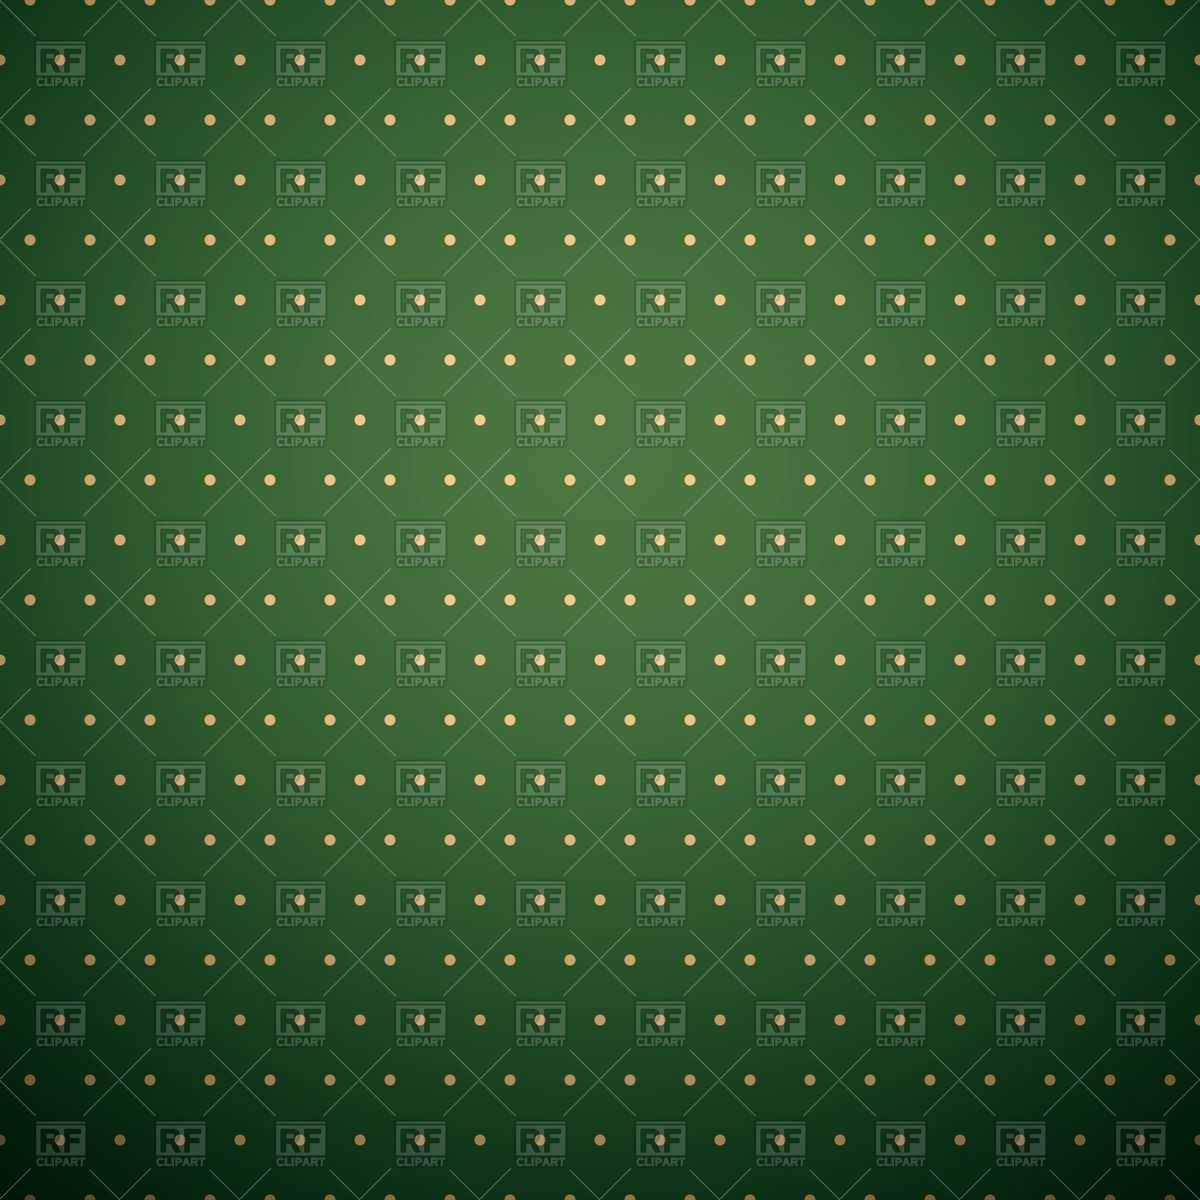 Dark green background with yellow polka dot pattern Vector Image.